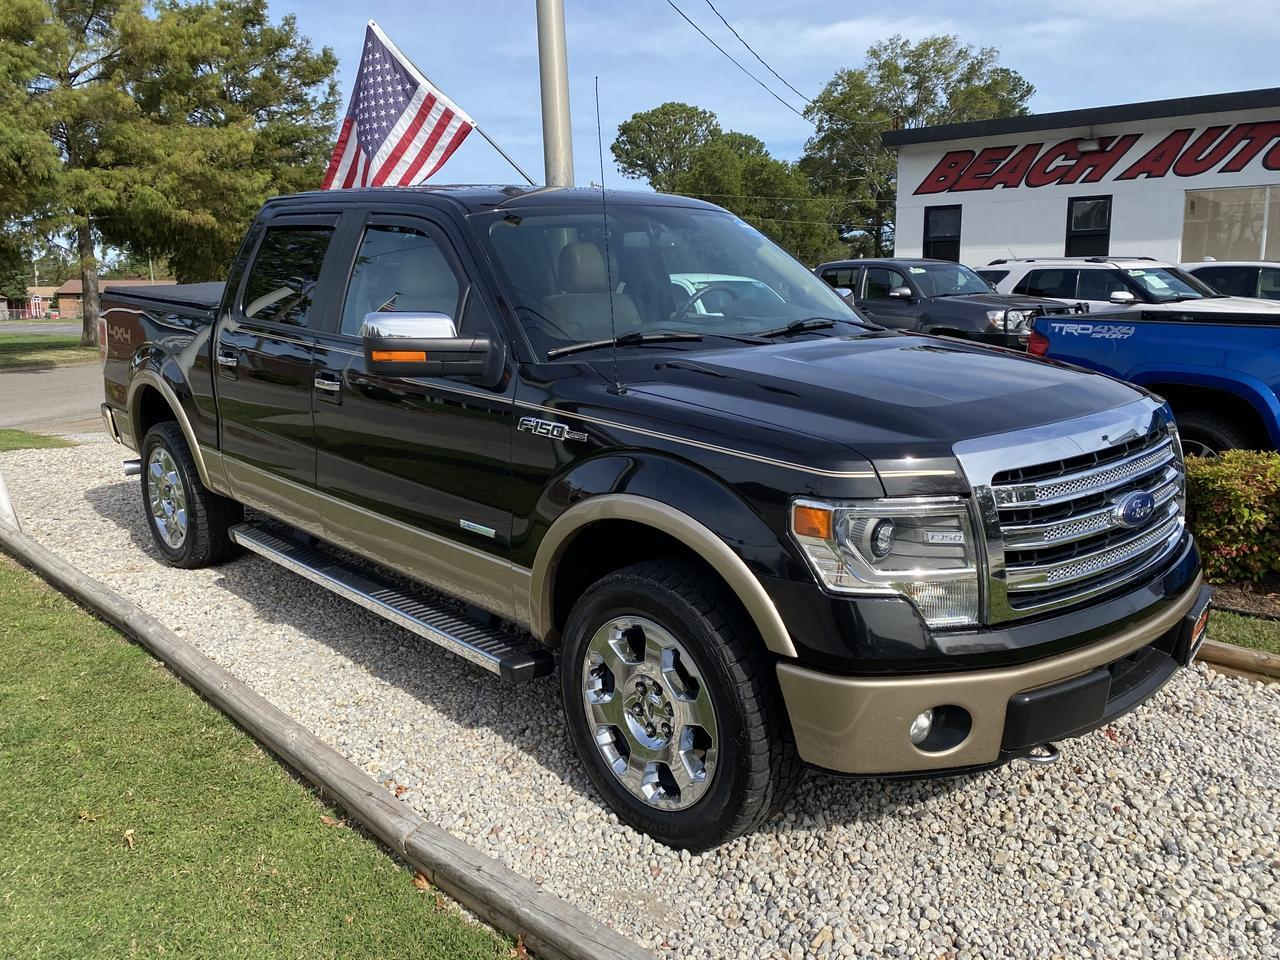 2014 FORD F-150 LARIAT SUPERCREW 4X4, WARRANTY, LEATHER, SUNROOF, NAV, HEATED/COOLED SEATS, BLUETOOTH, CLEAN CARFAX! Norfolk VA